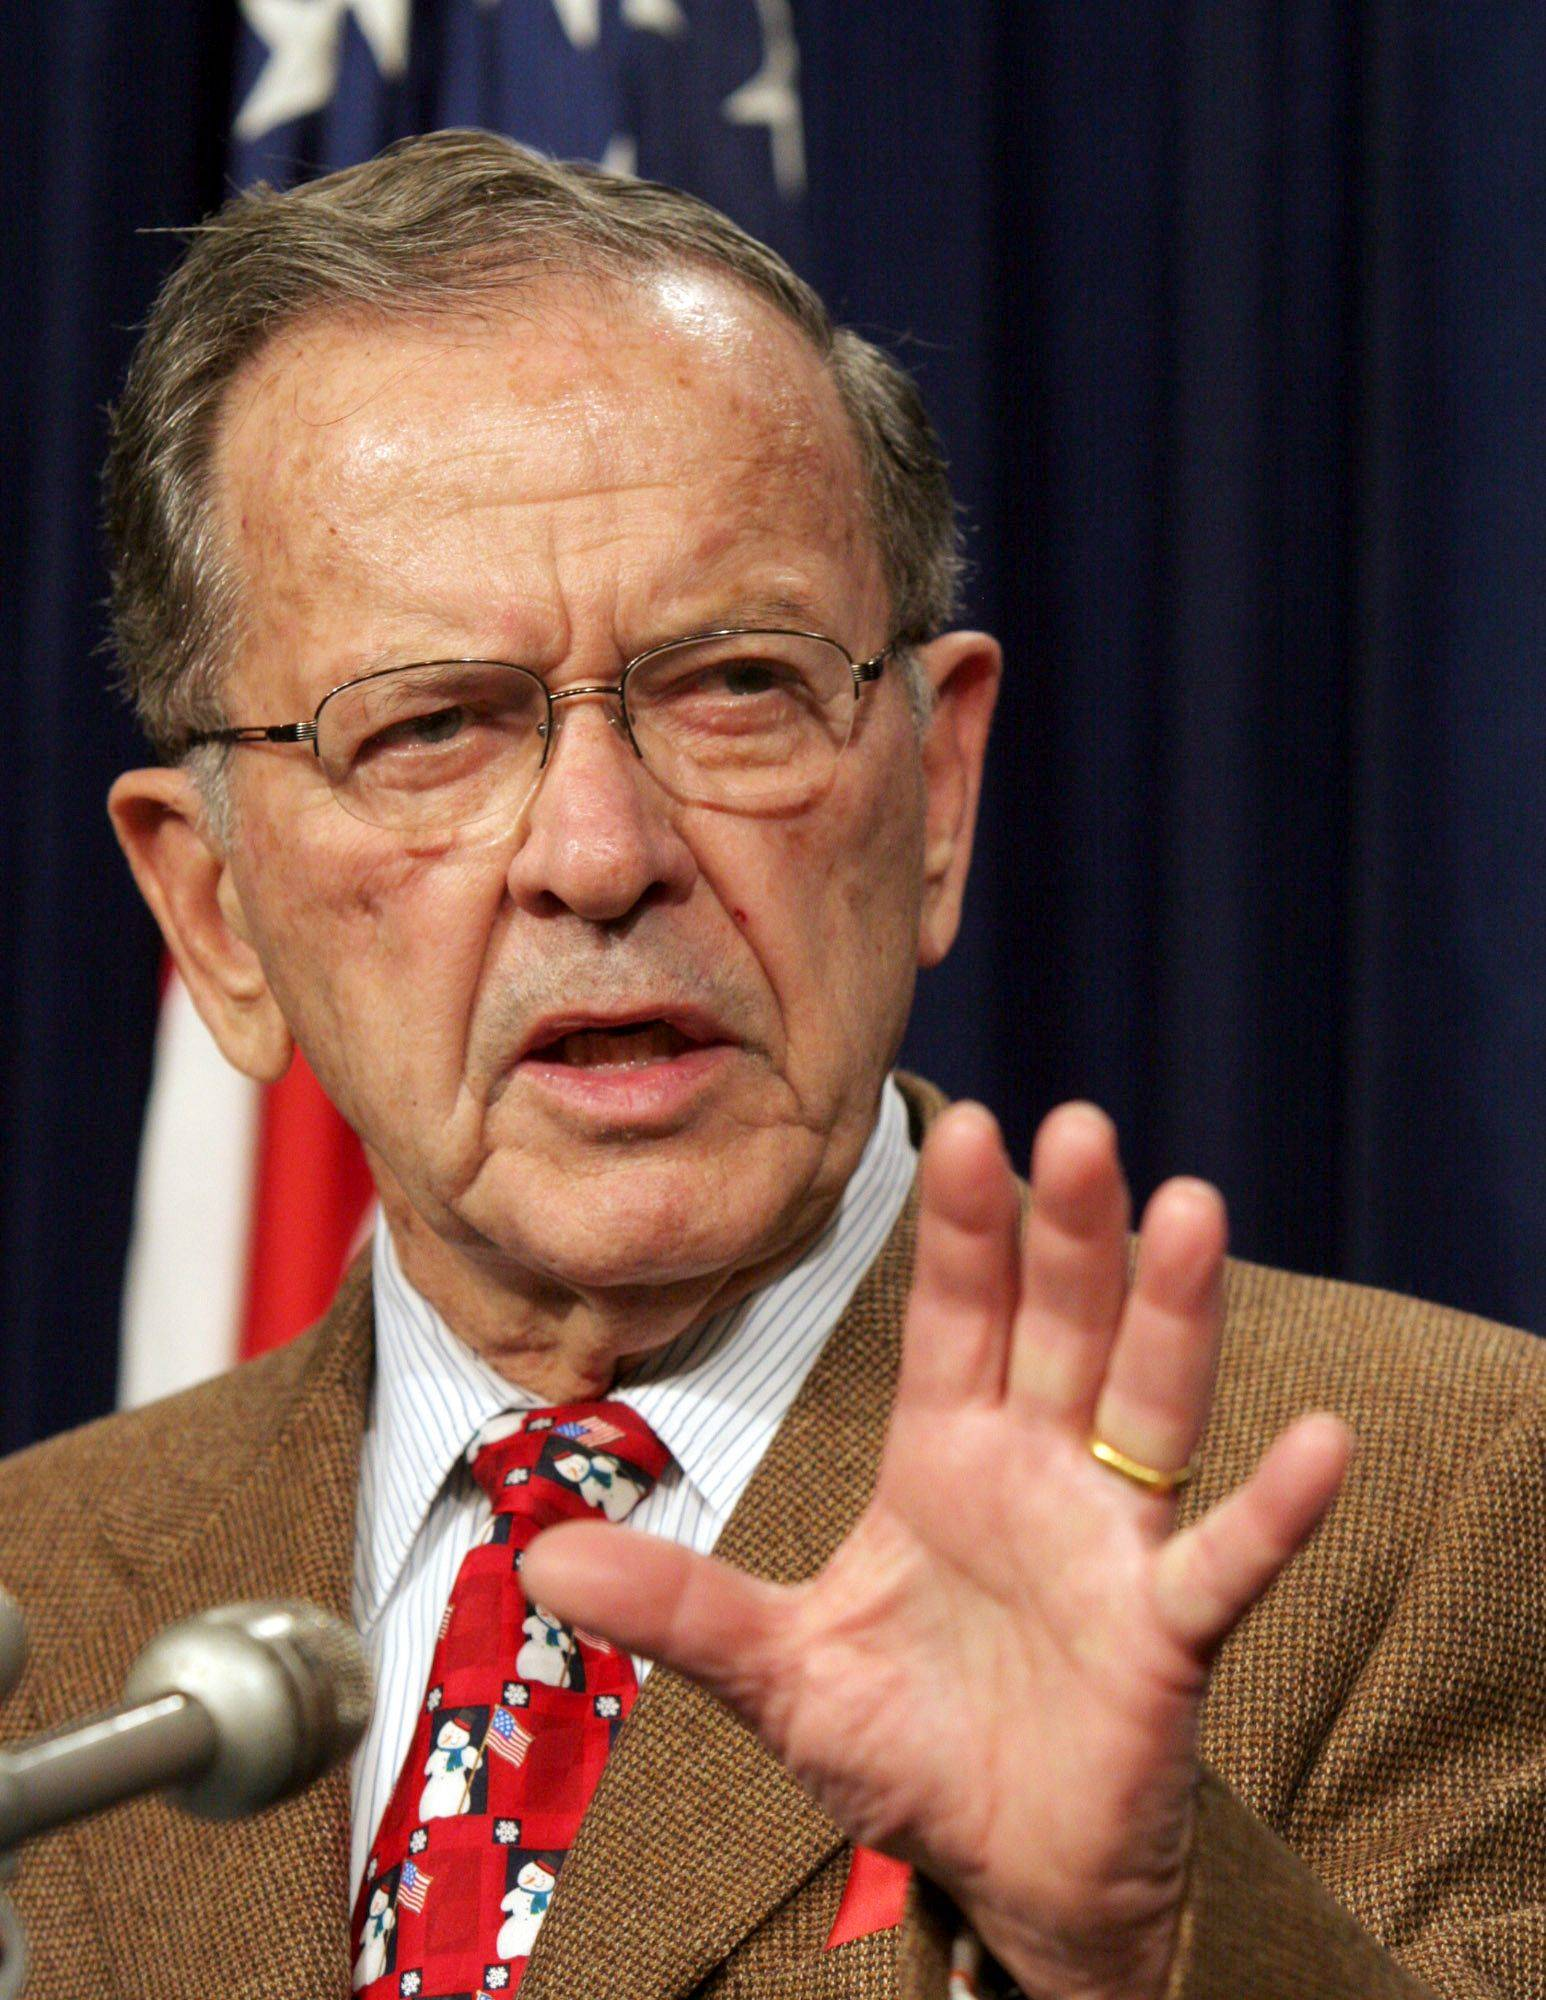 Sen. Ted Stevens, Alaska, speaks during a news conference in Washington, D.C. Stevens was killed Monday, Aug. 9, 2010 at 86 in a plane crash in a remote part of Alaska while on his way to a fishing trip.